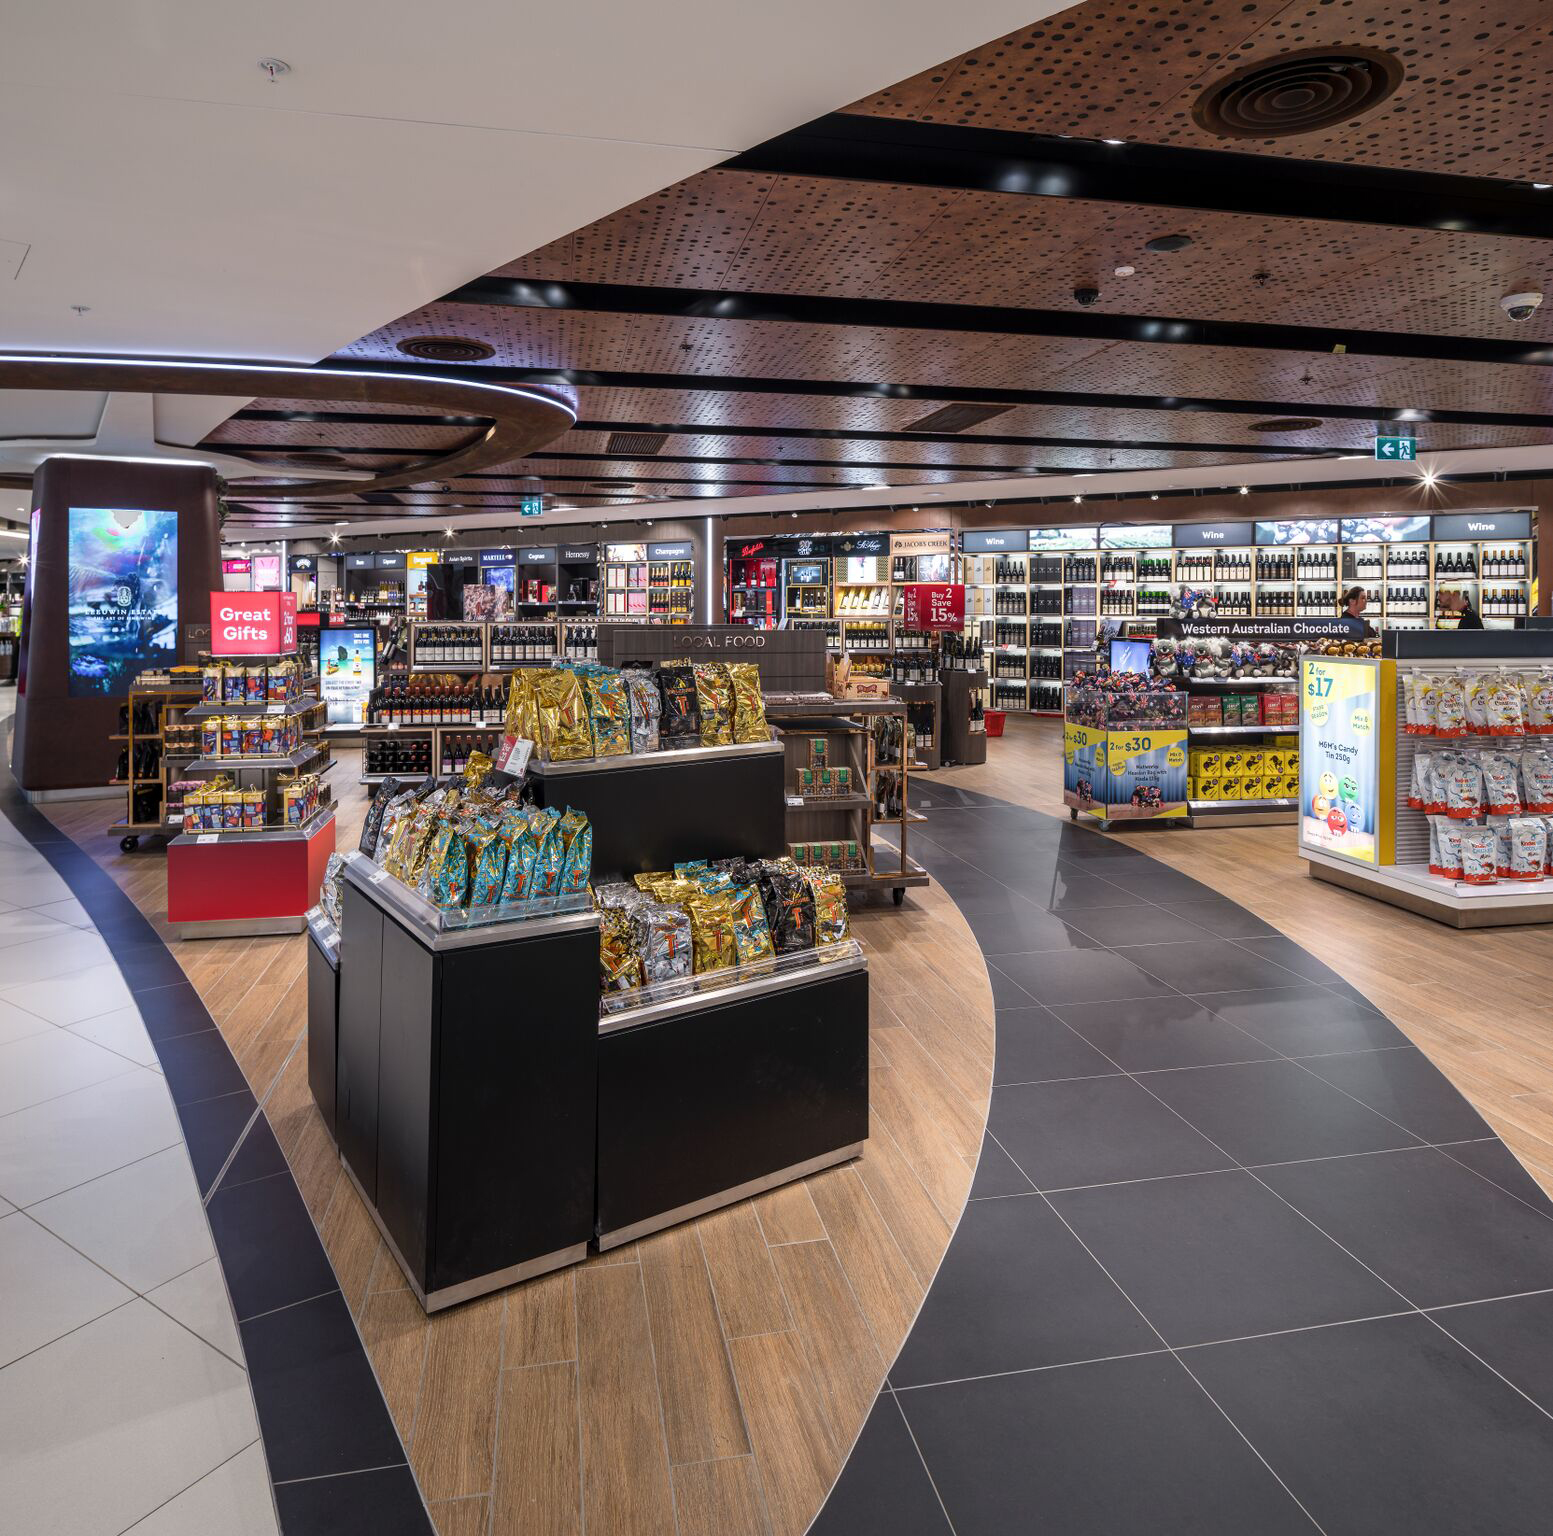 Duty Free retail kiosks at the Perth International Airport with dark organic shapes on floor and ceiling